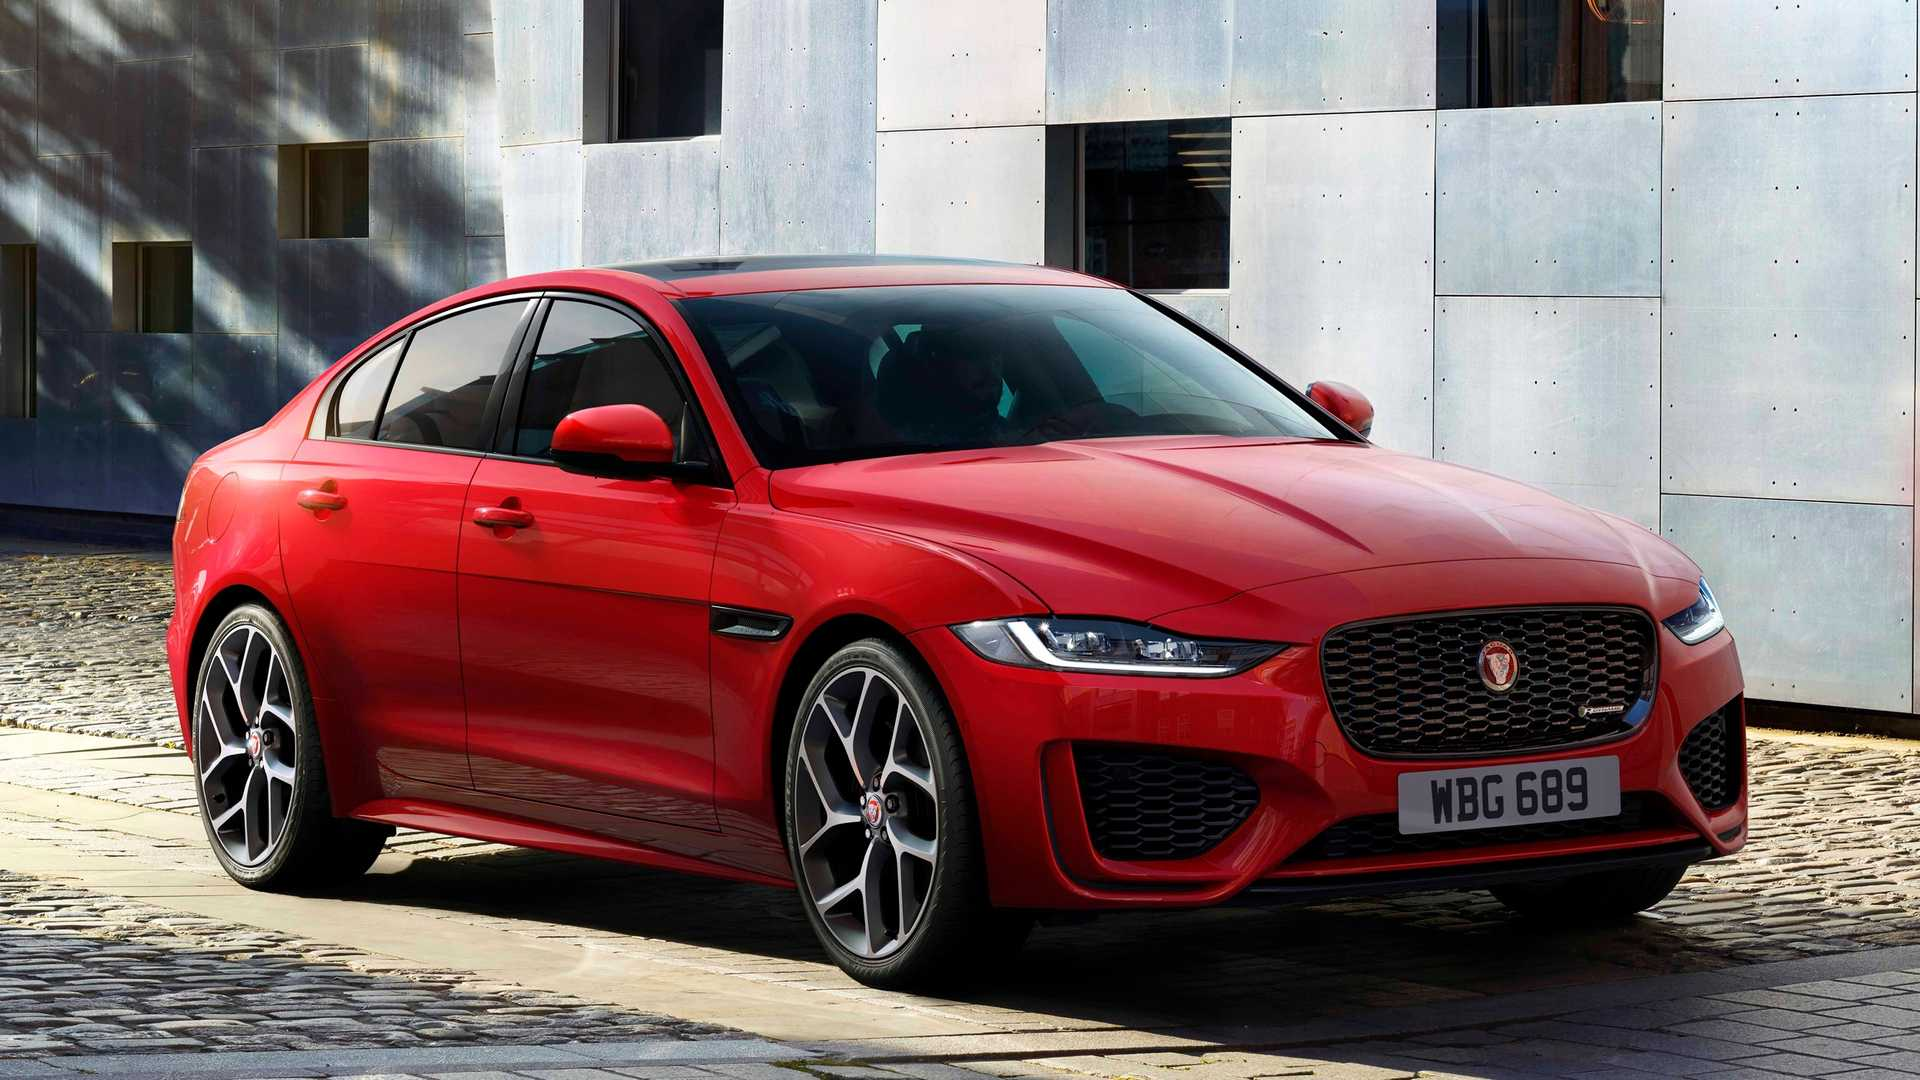 55 A 2020 Jaguar Xe Build Overview